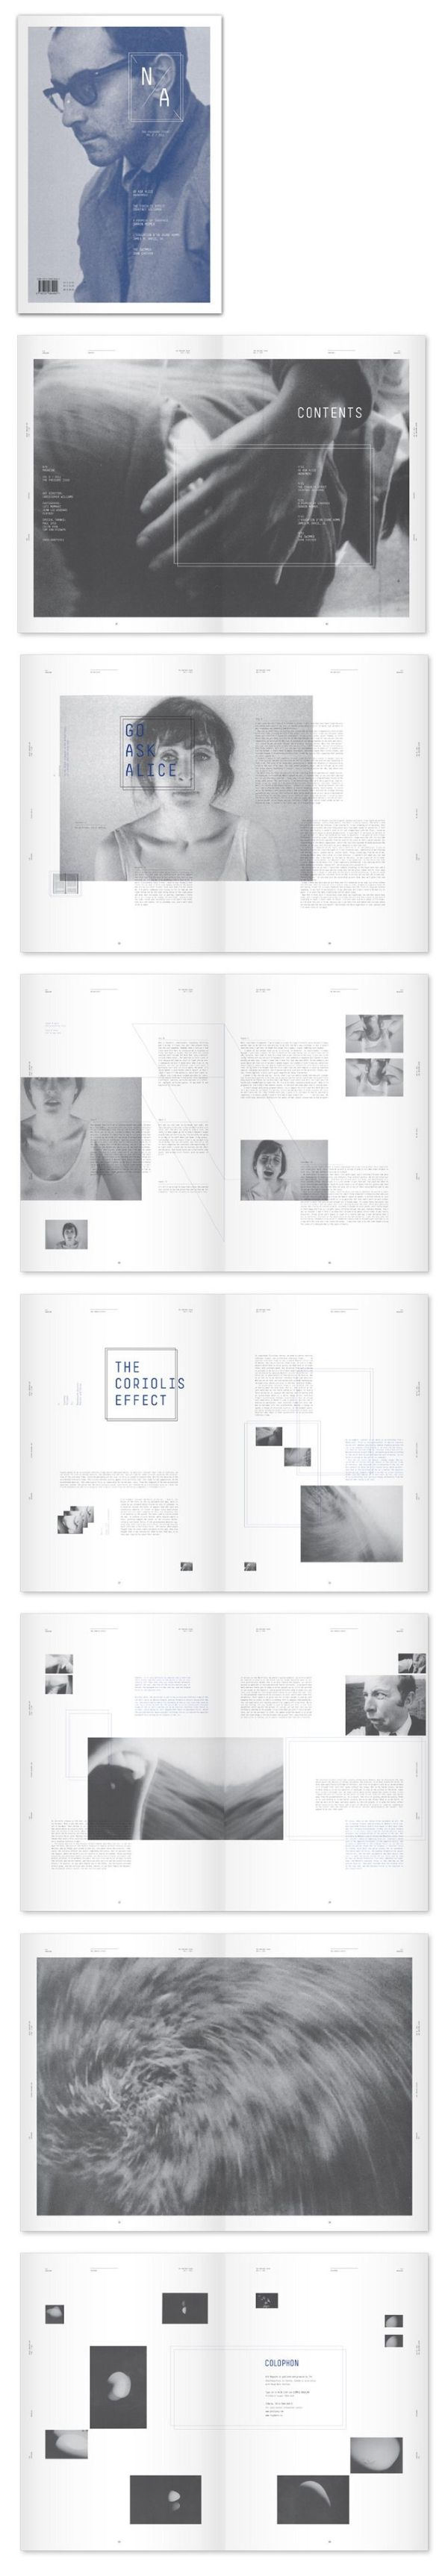 magazine layout. by eunryul park